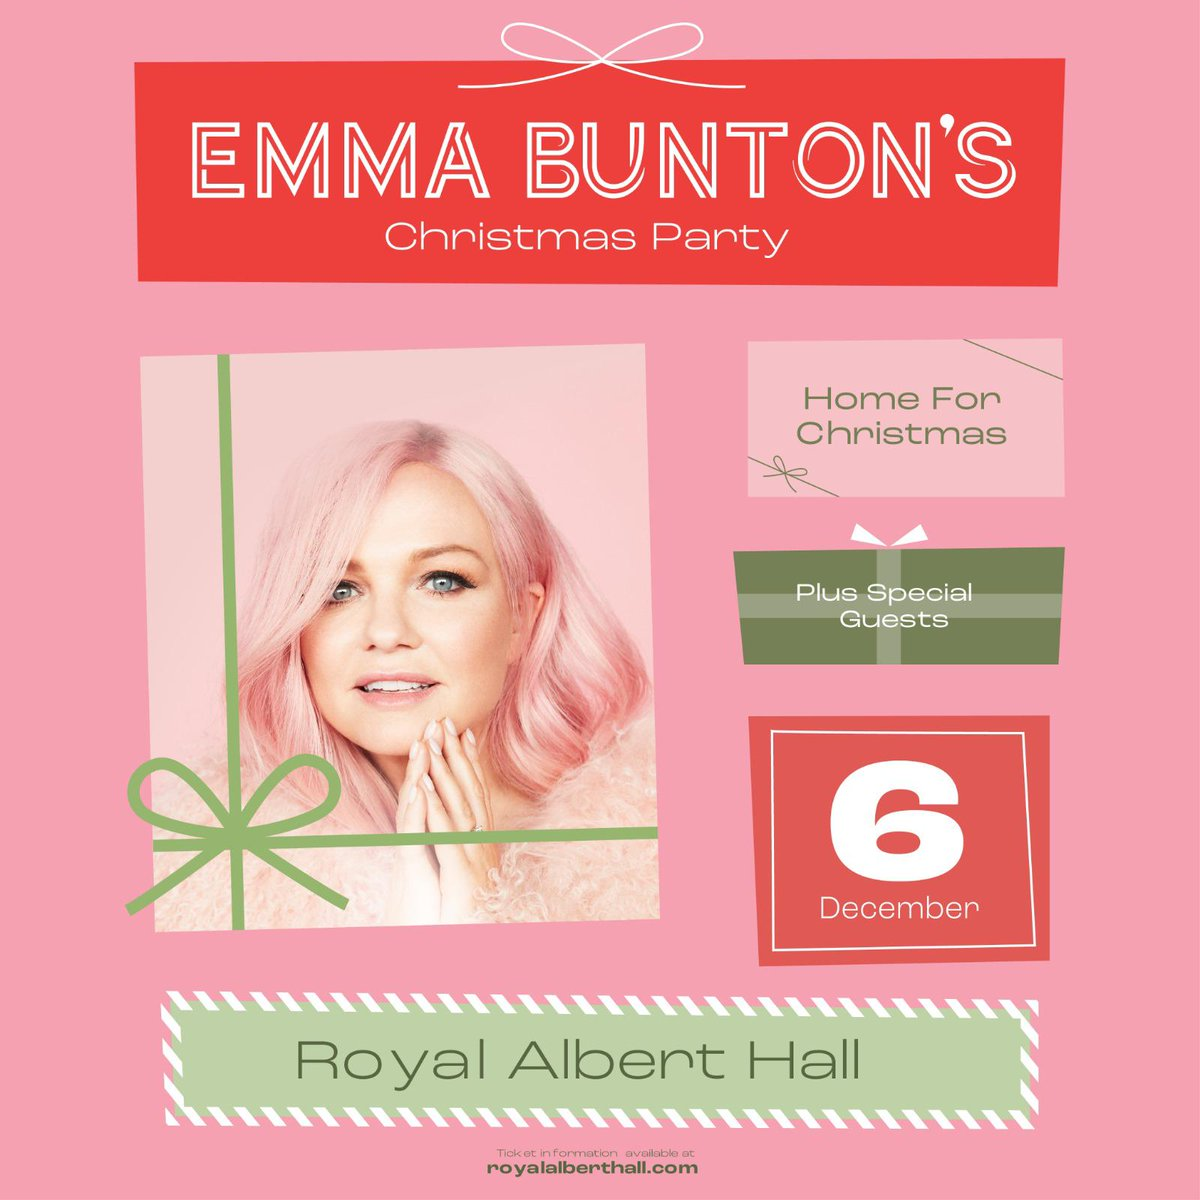 Check out my good friend @EmmaBunton @RoyalAlbertHall on the 6th December, tickets here royalalberthall.com/tickets/events…